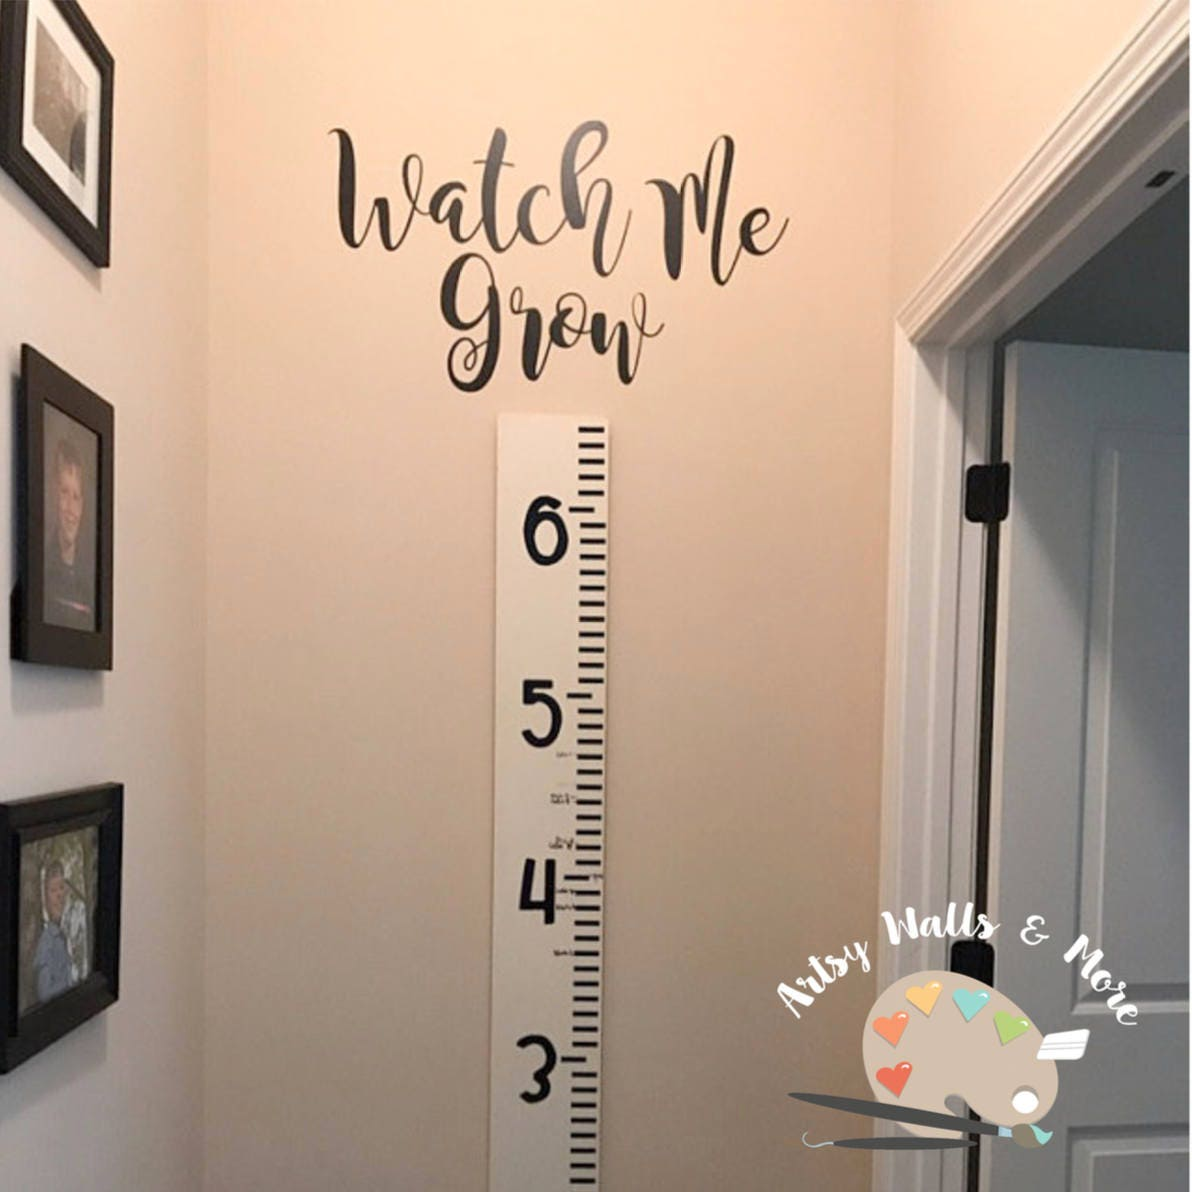 Watch me grow vinyl decal sticker for growth chart ruler add zoom geenschuldenfo Image collections